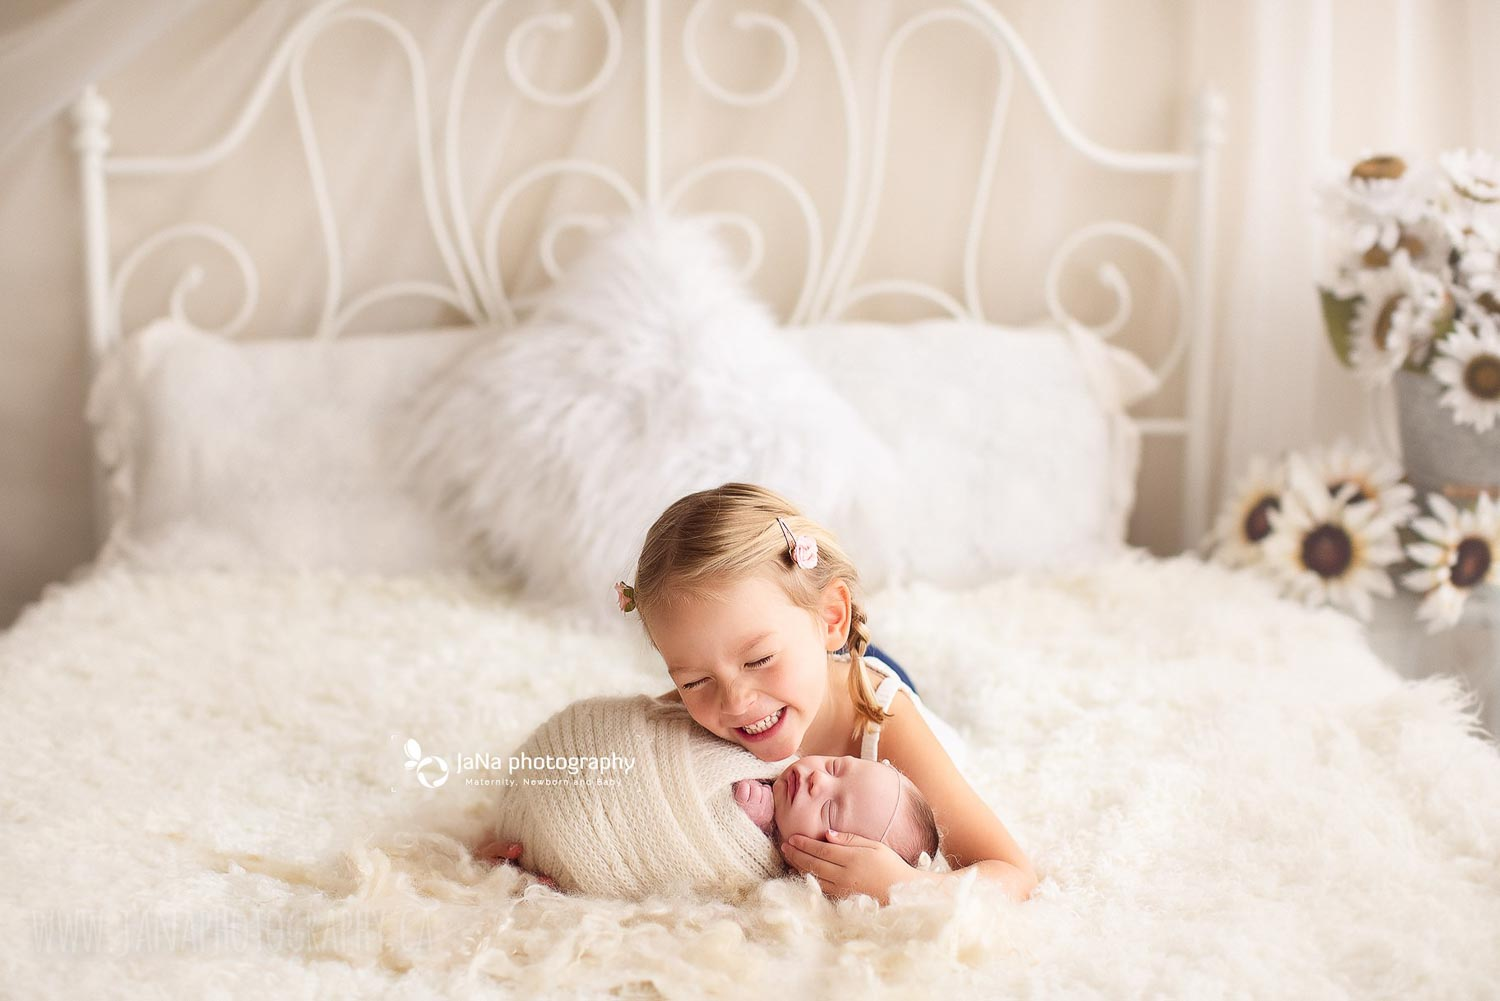 sibling and newborn photography at home - natural light